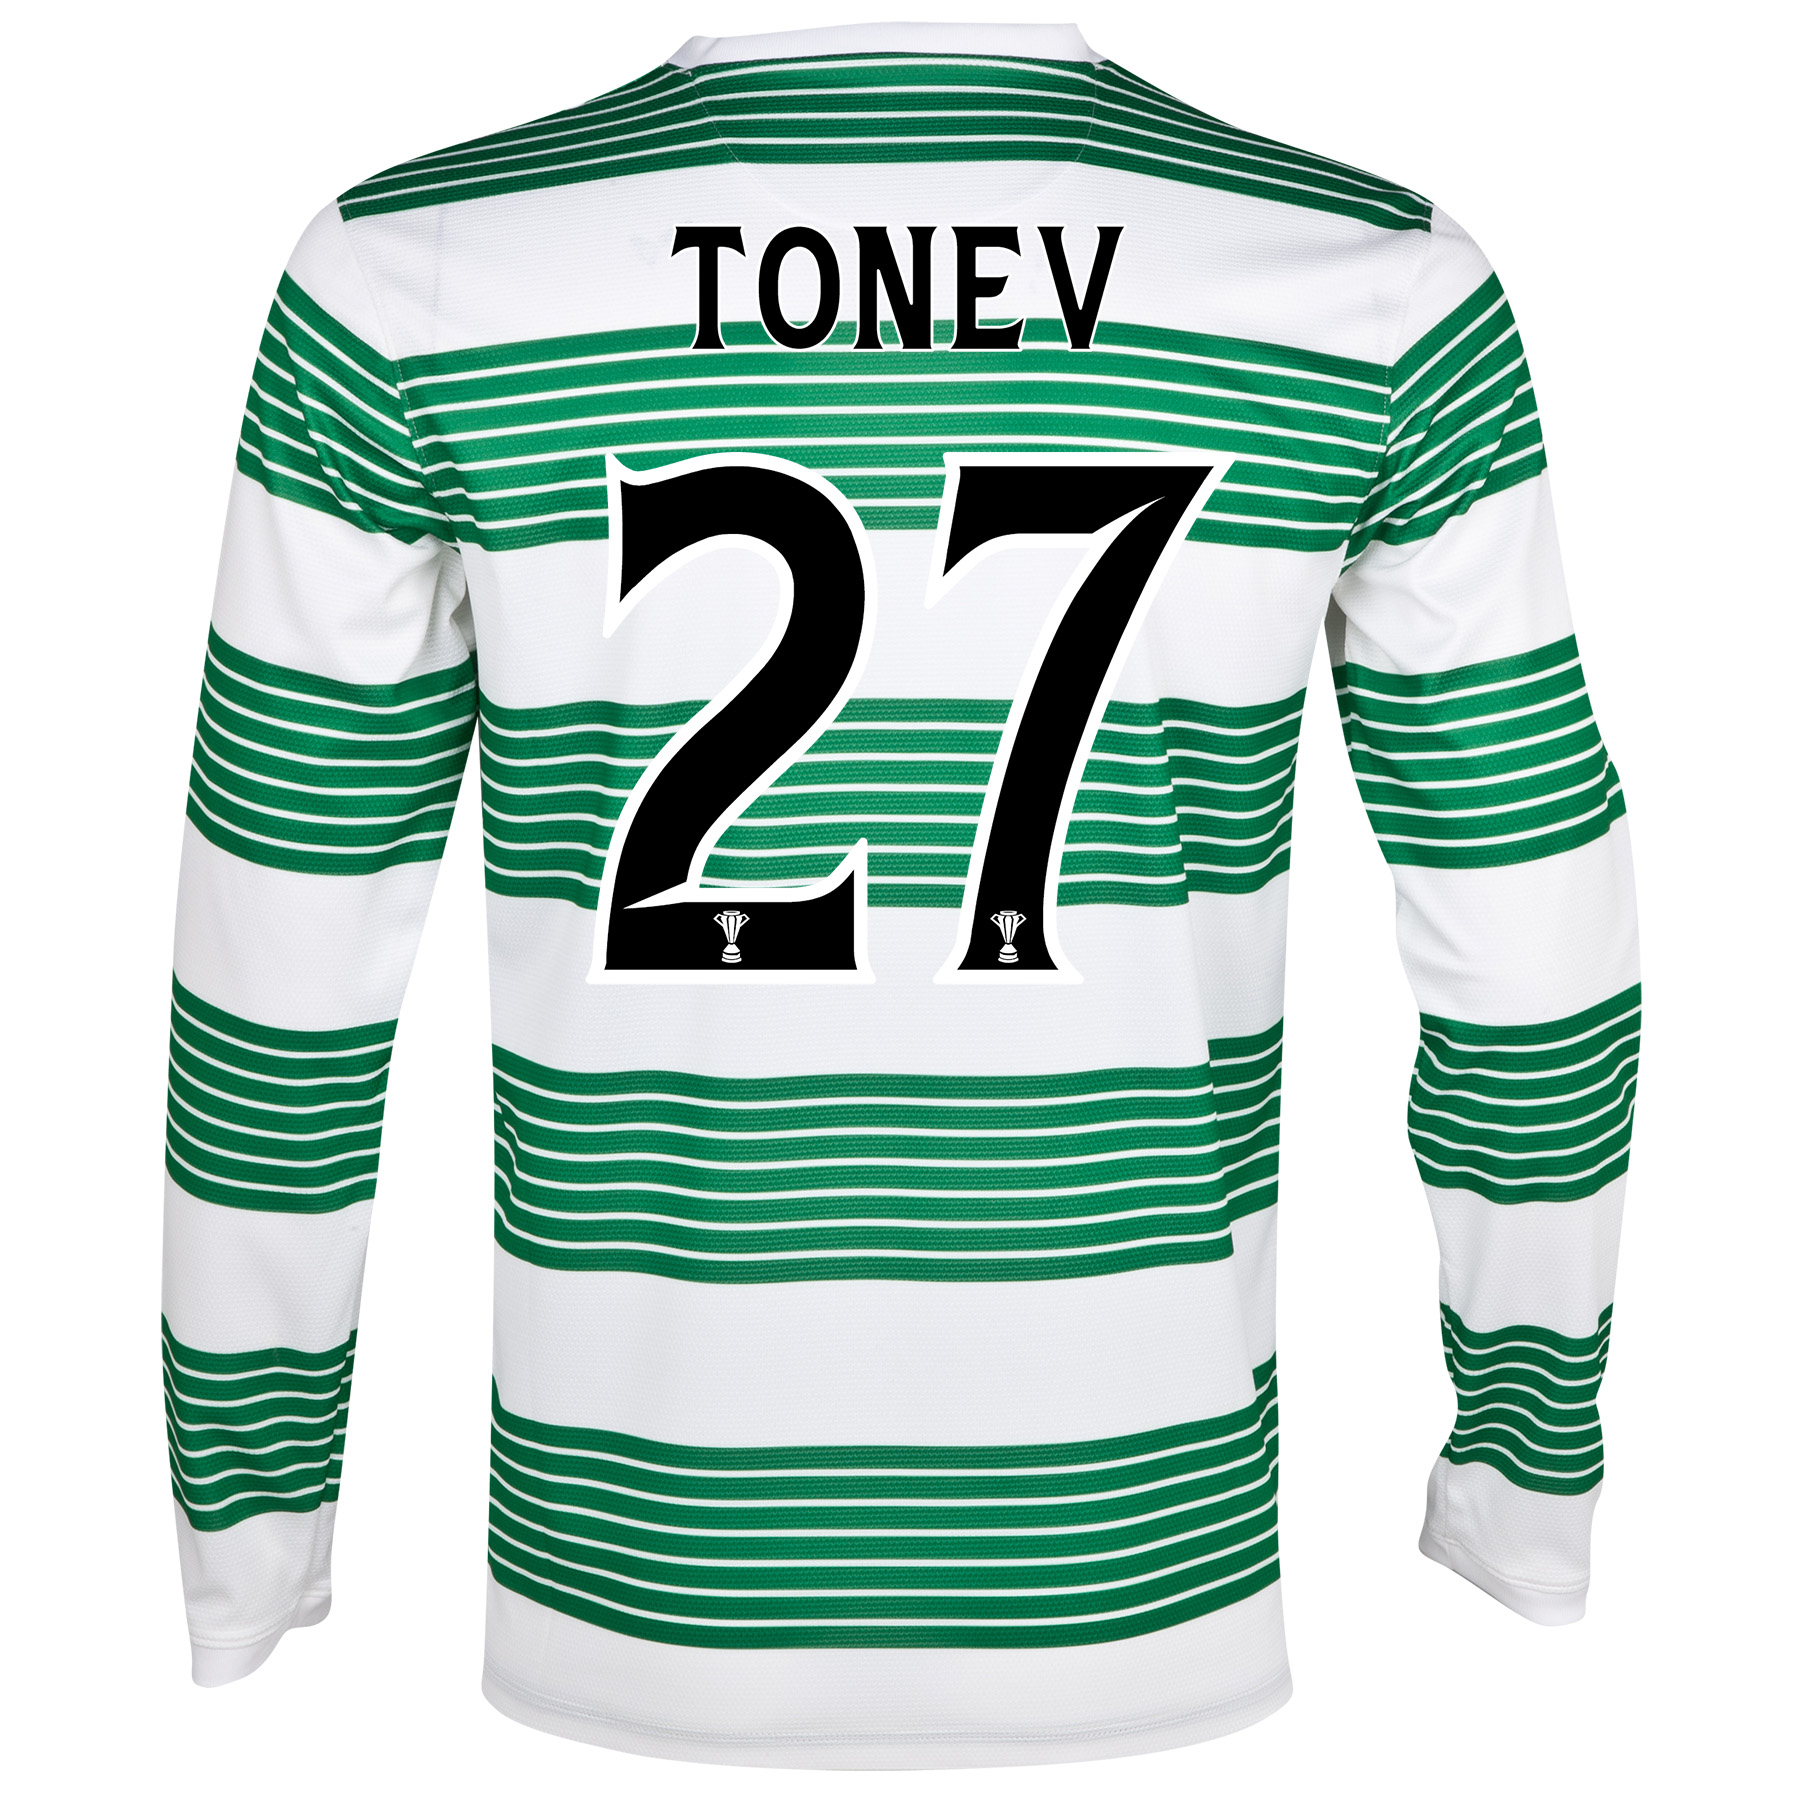 Celtic Home Shirt 2013/15 - L/S- With Sponsor with Tonev 27 printing